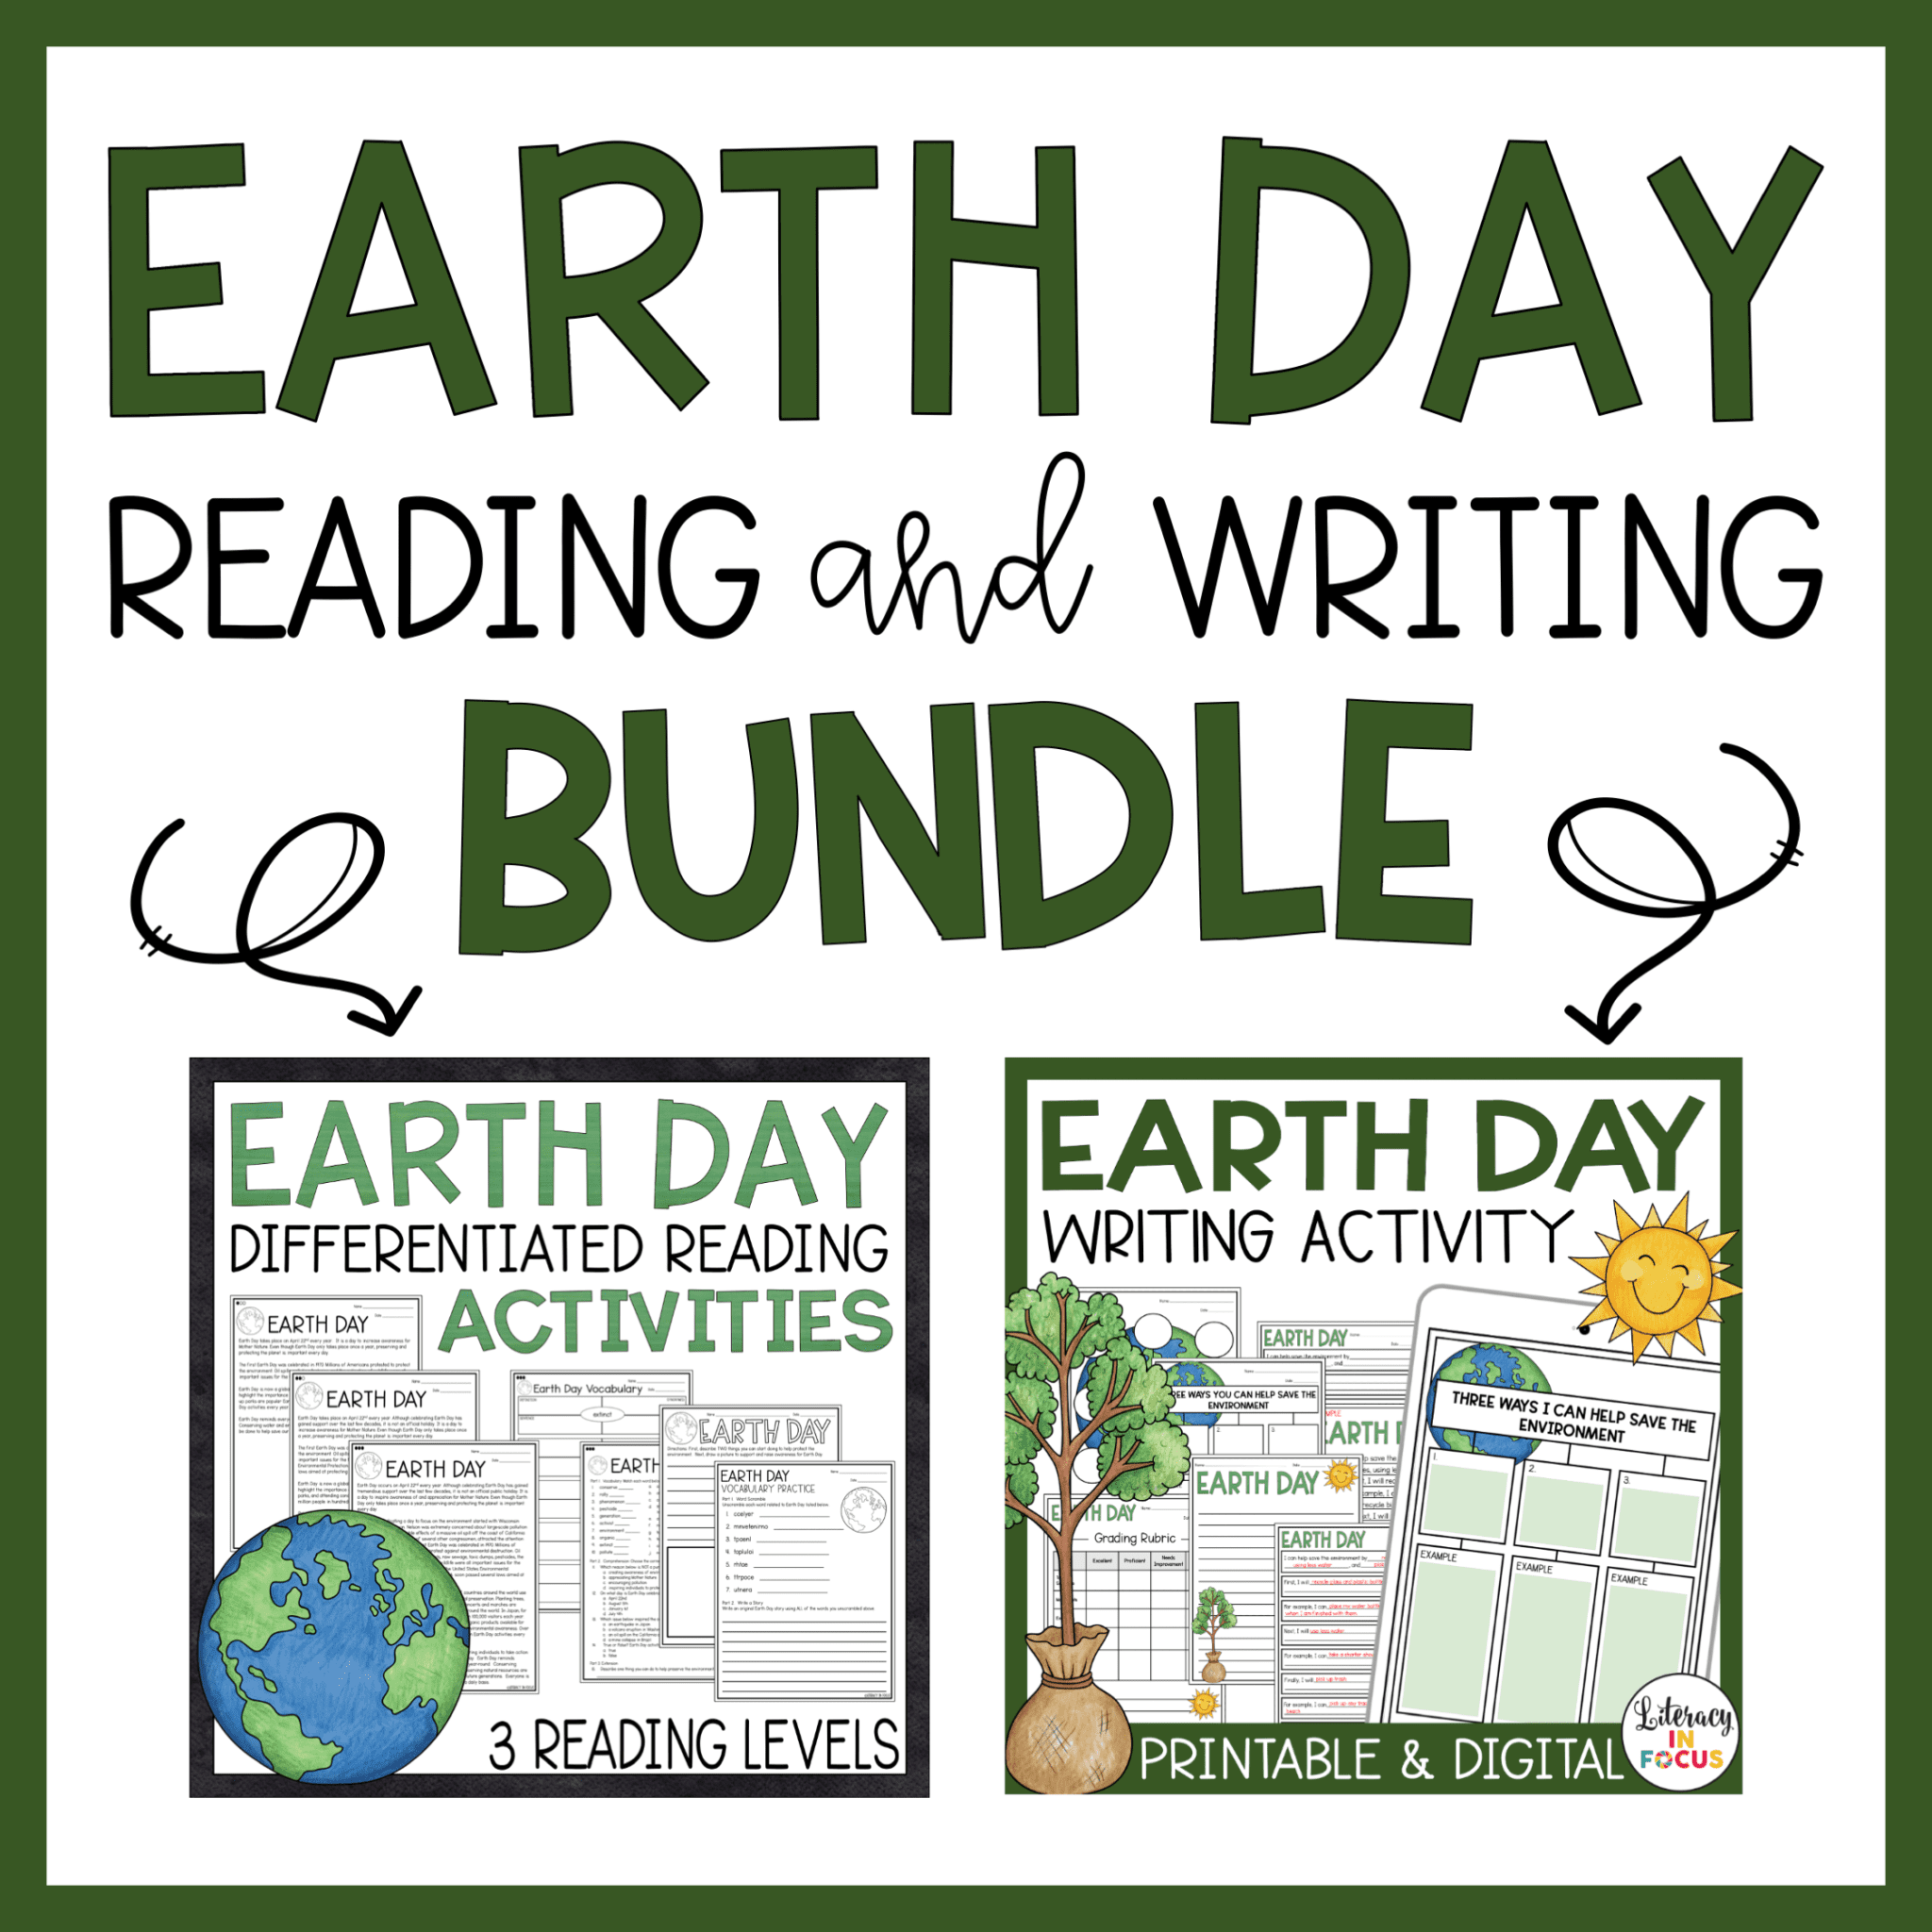 Earth Day Reading and Writing Activities